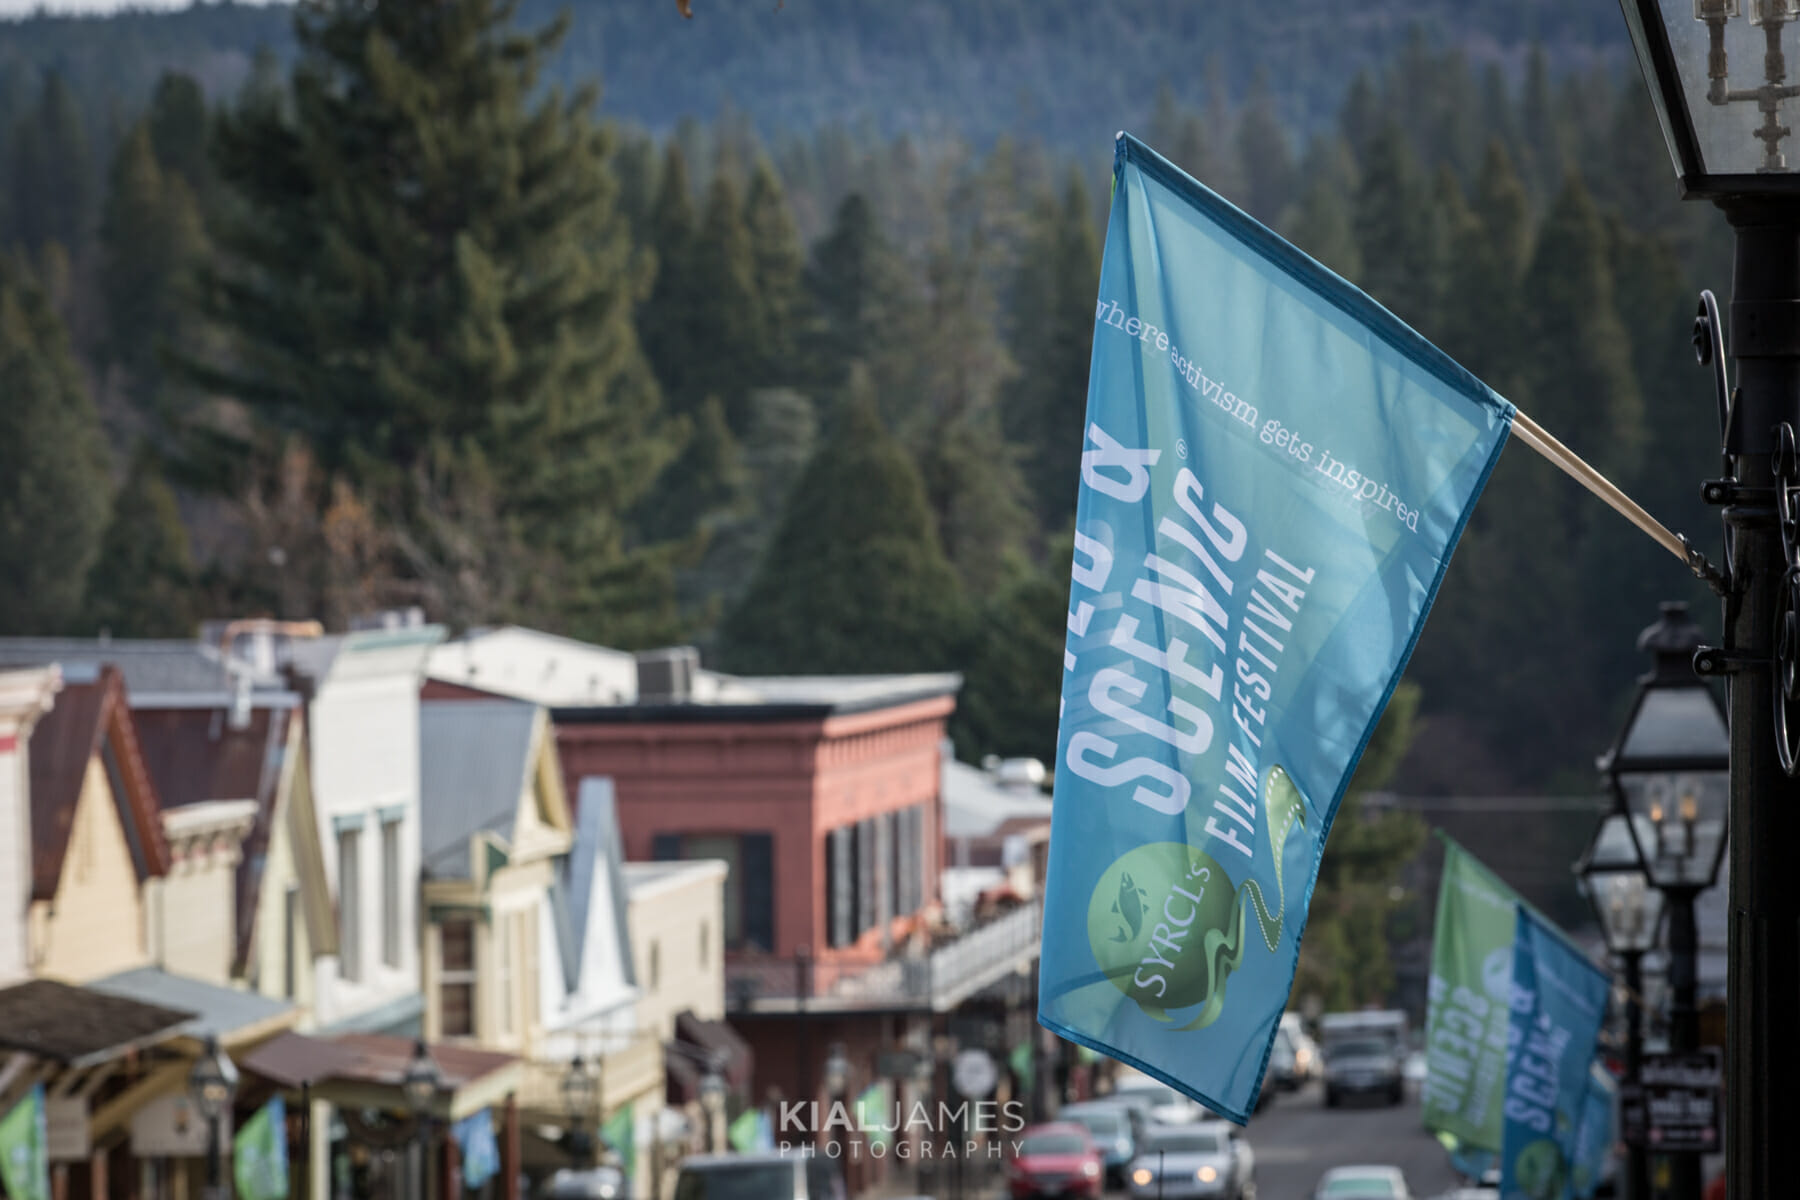 wild scenic film festival offers close up views of the environment